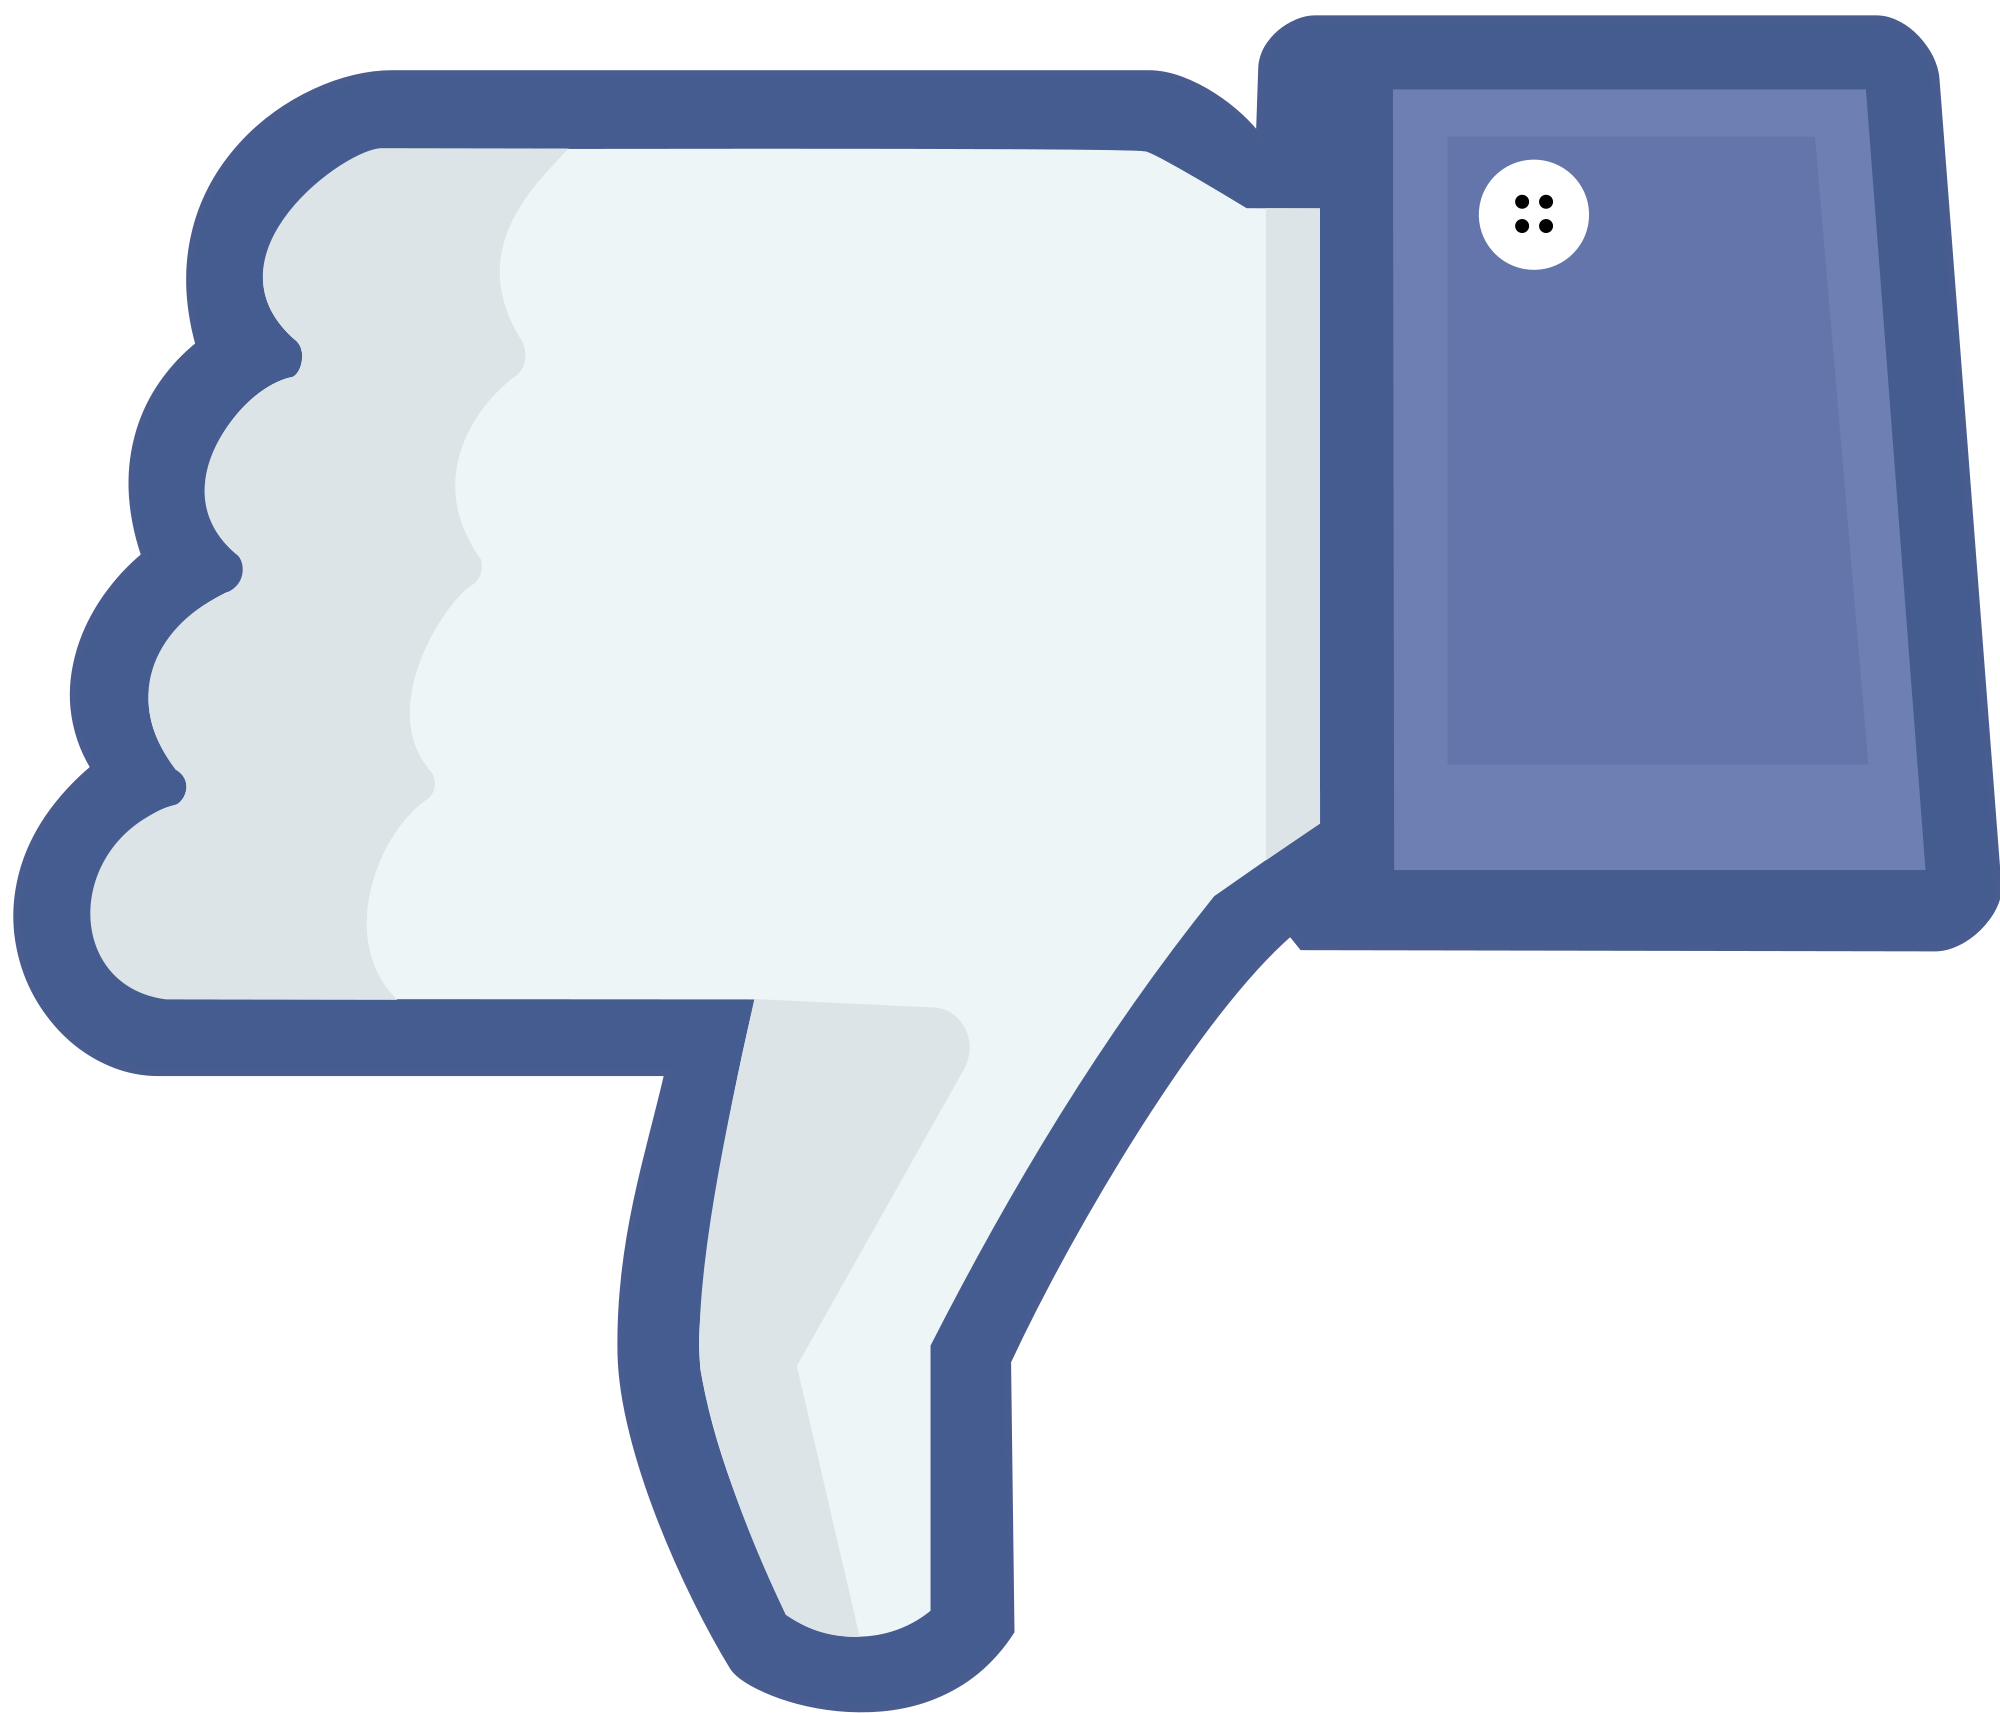 File:Not facebook not like thumbs down.png - Facebook Like PNG